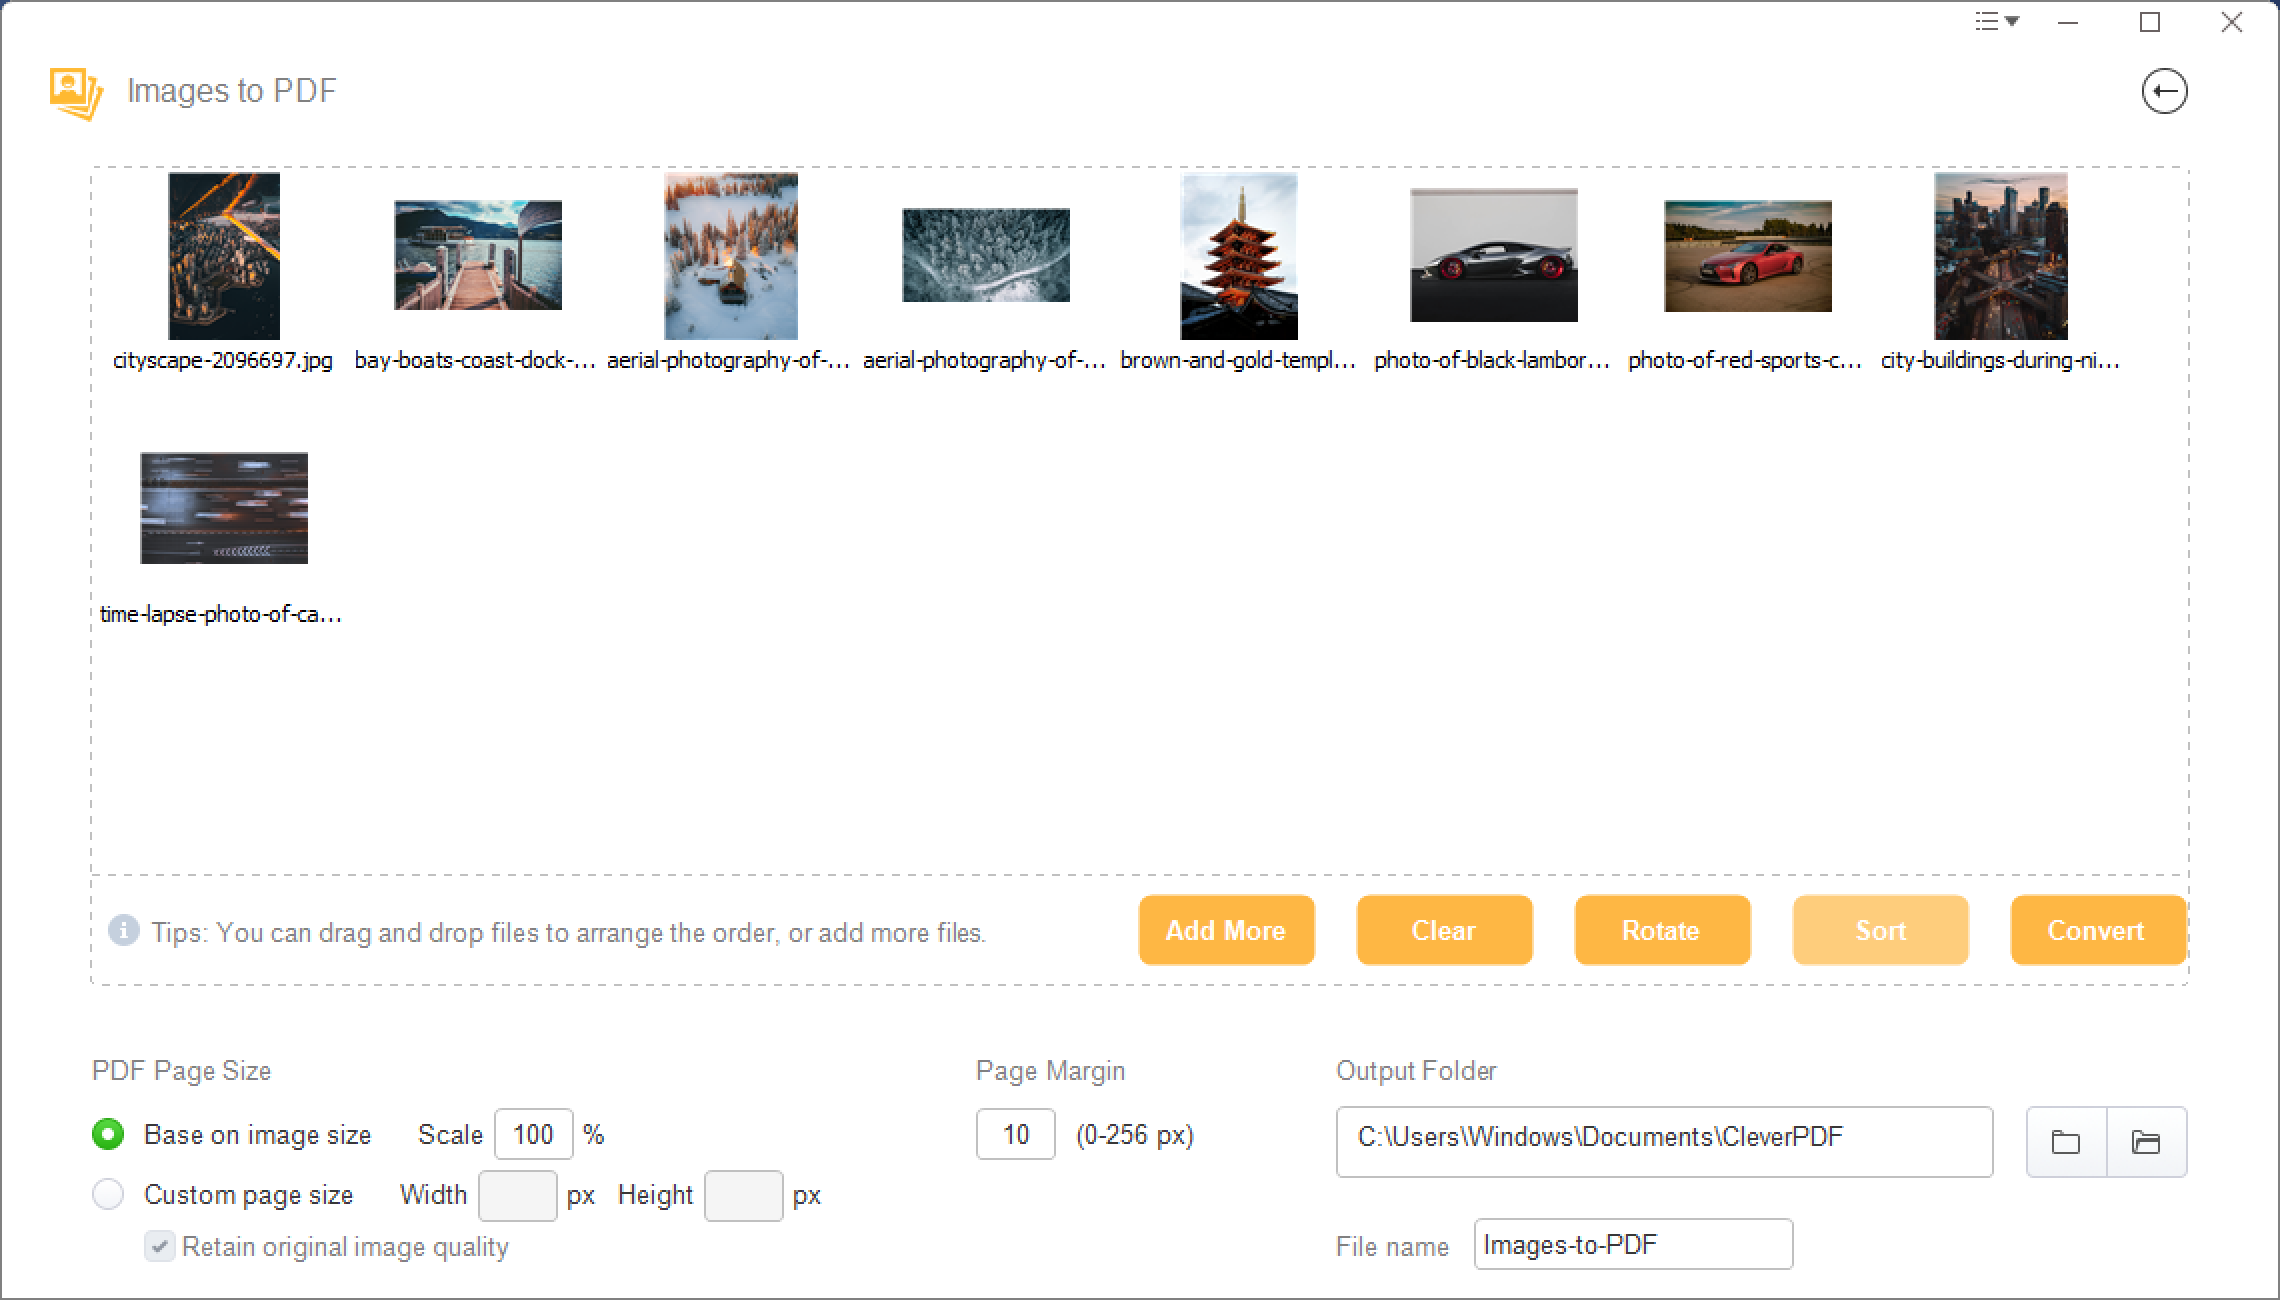 How To Combine Multiple Images To PDF For Free